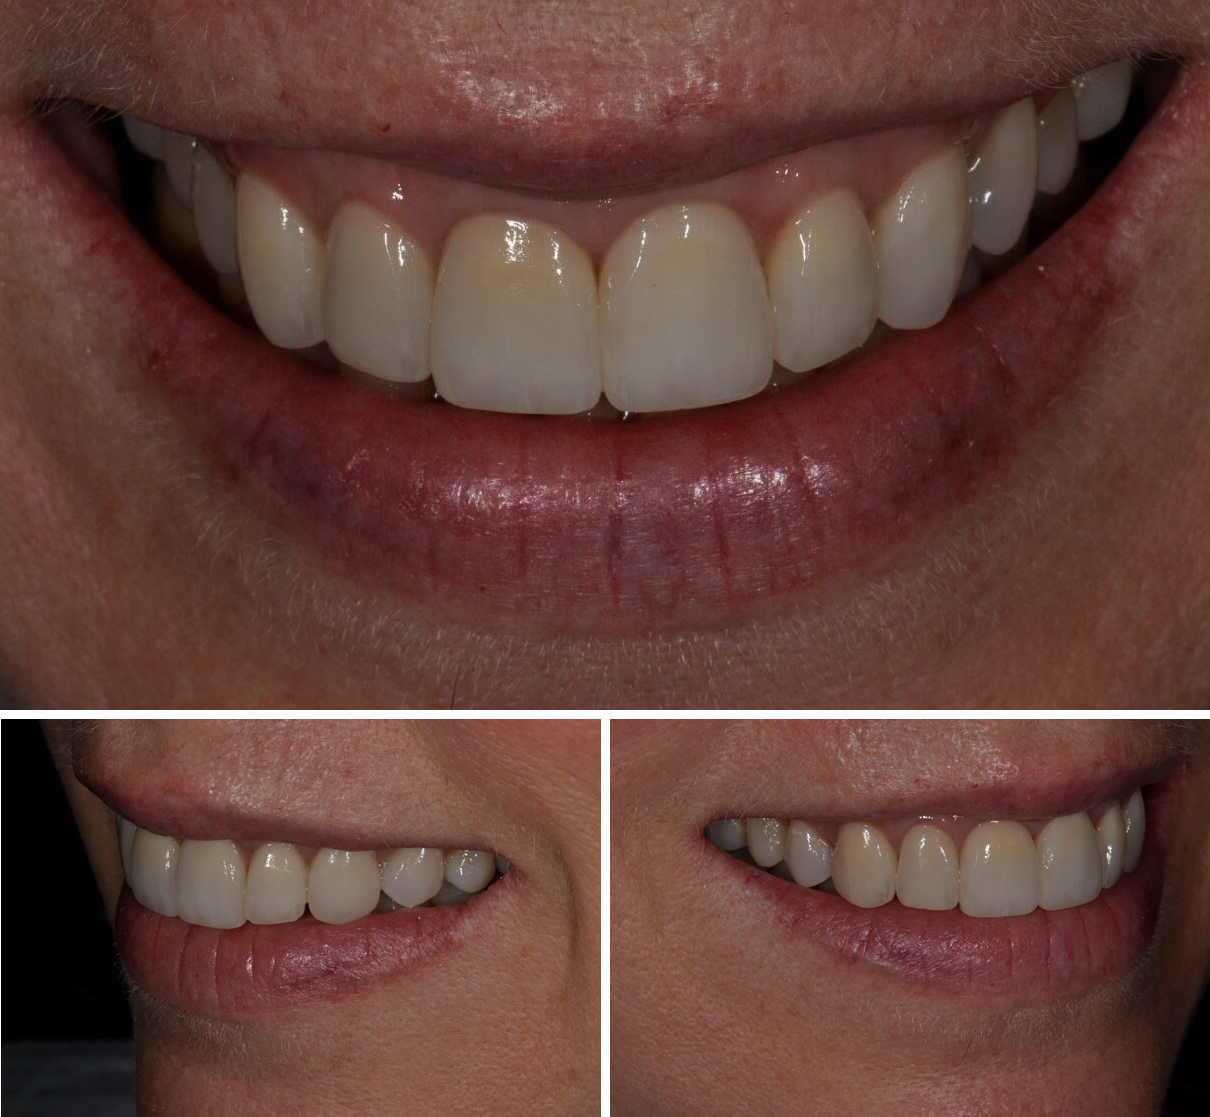 Replacement of Existing Dentistry - After